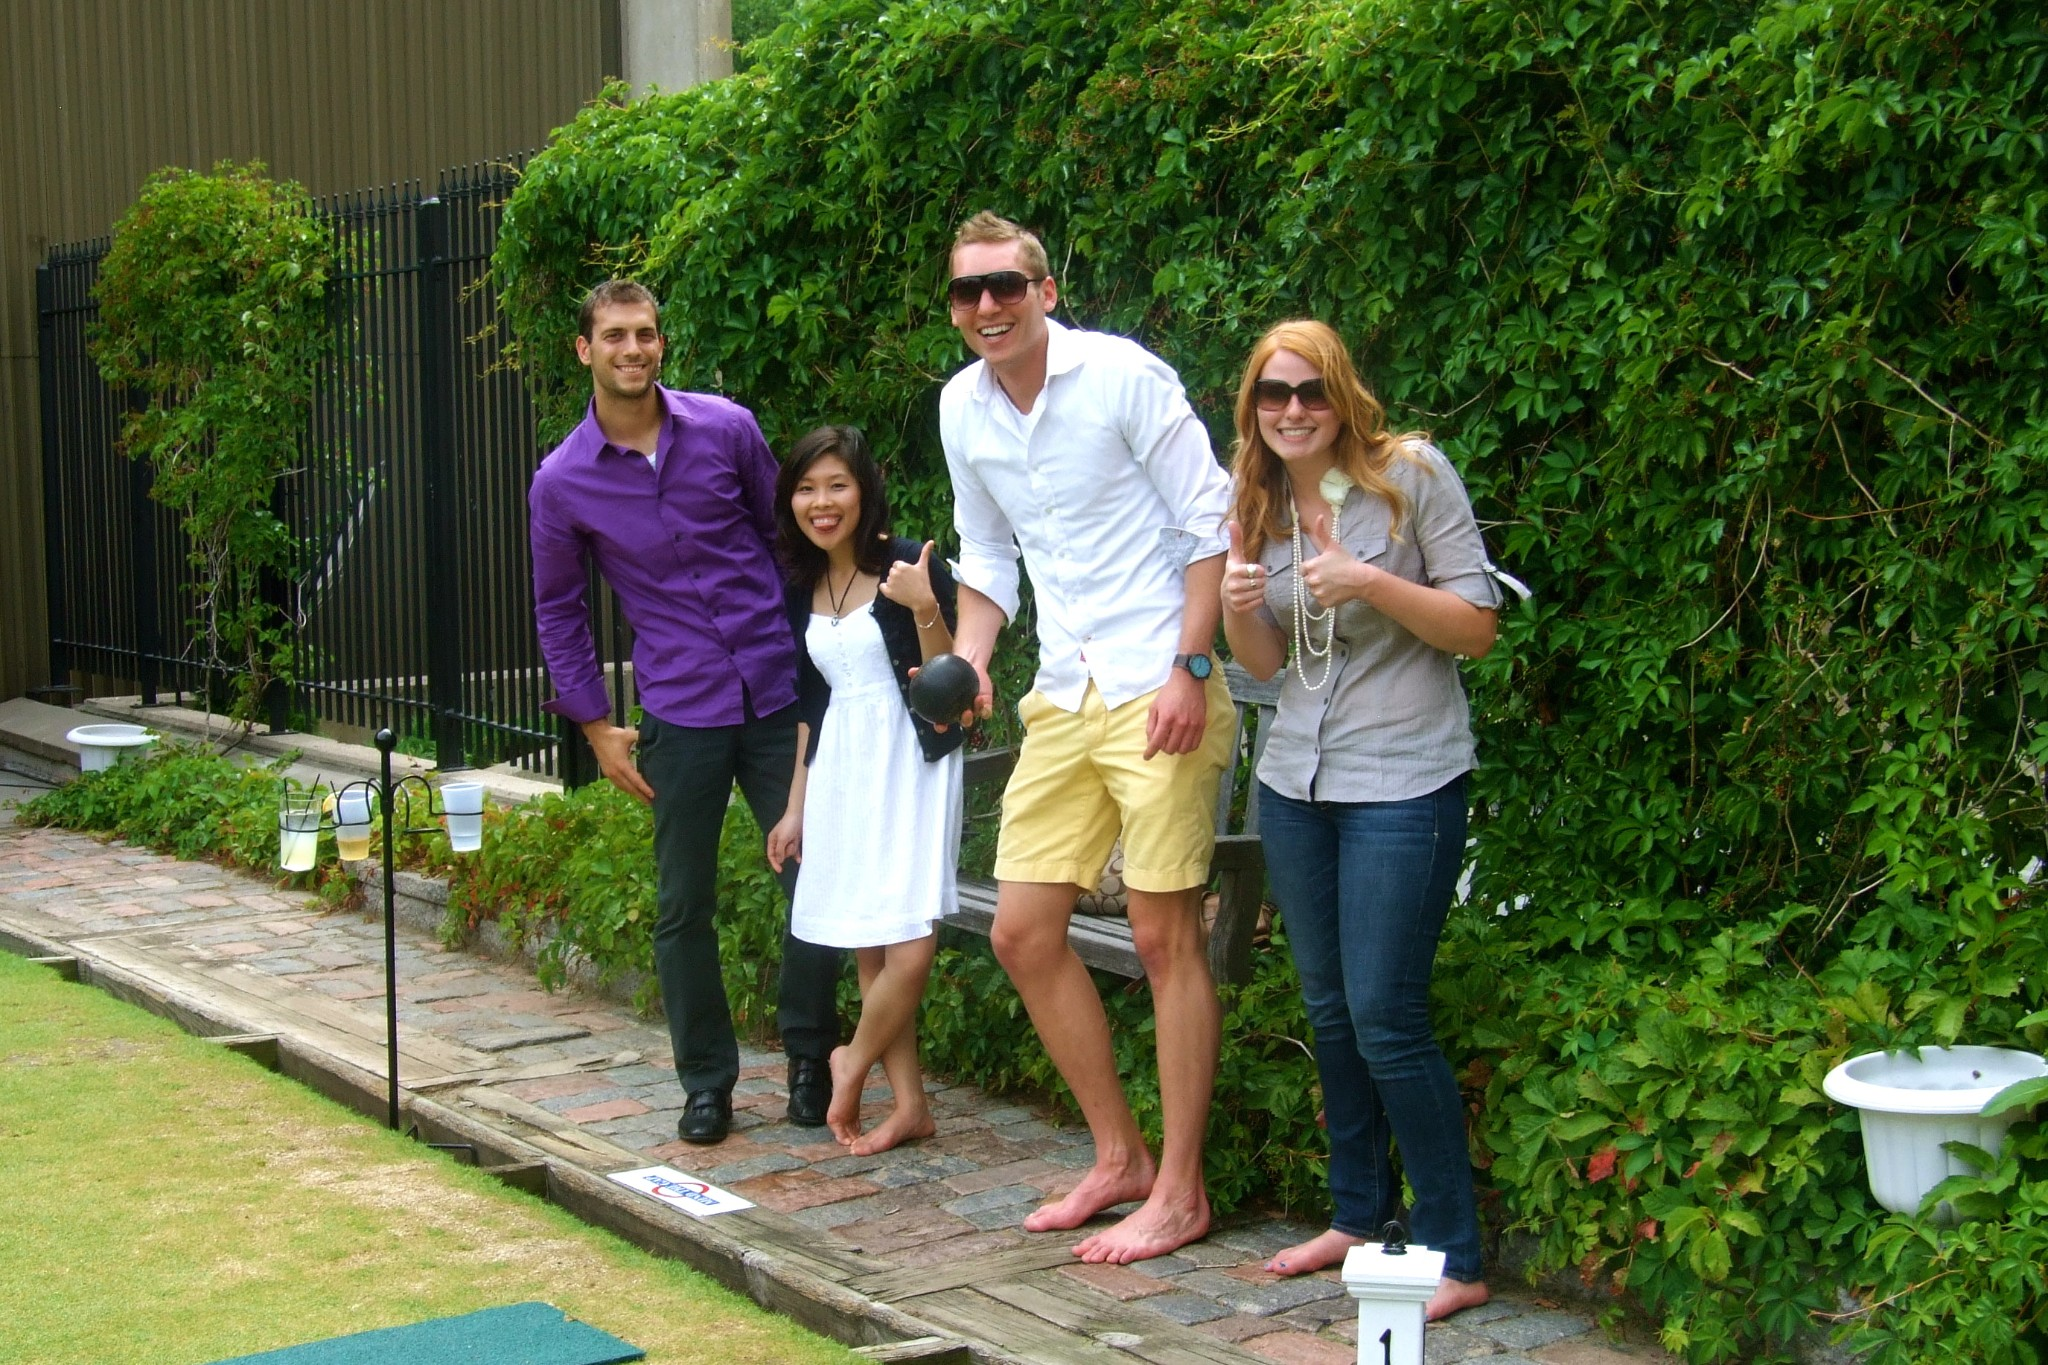 Deluxe Corp Interns Go Lawn Bowling | Deluxe Talent Community